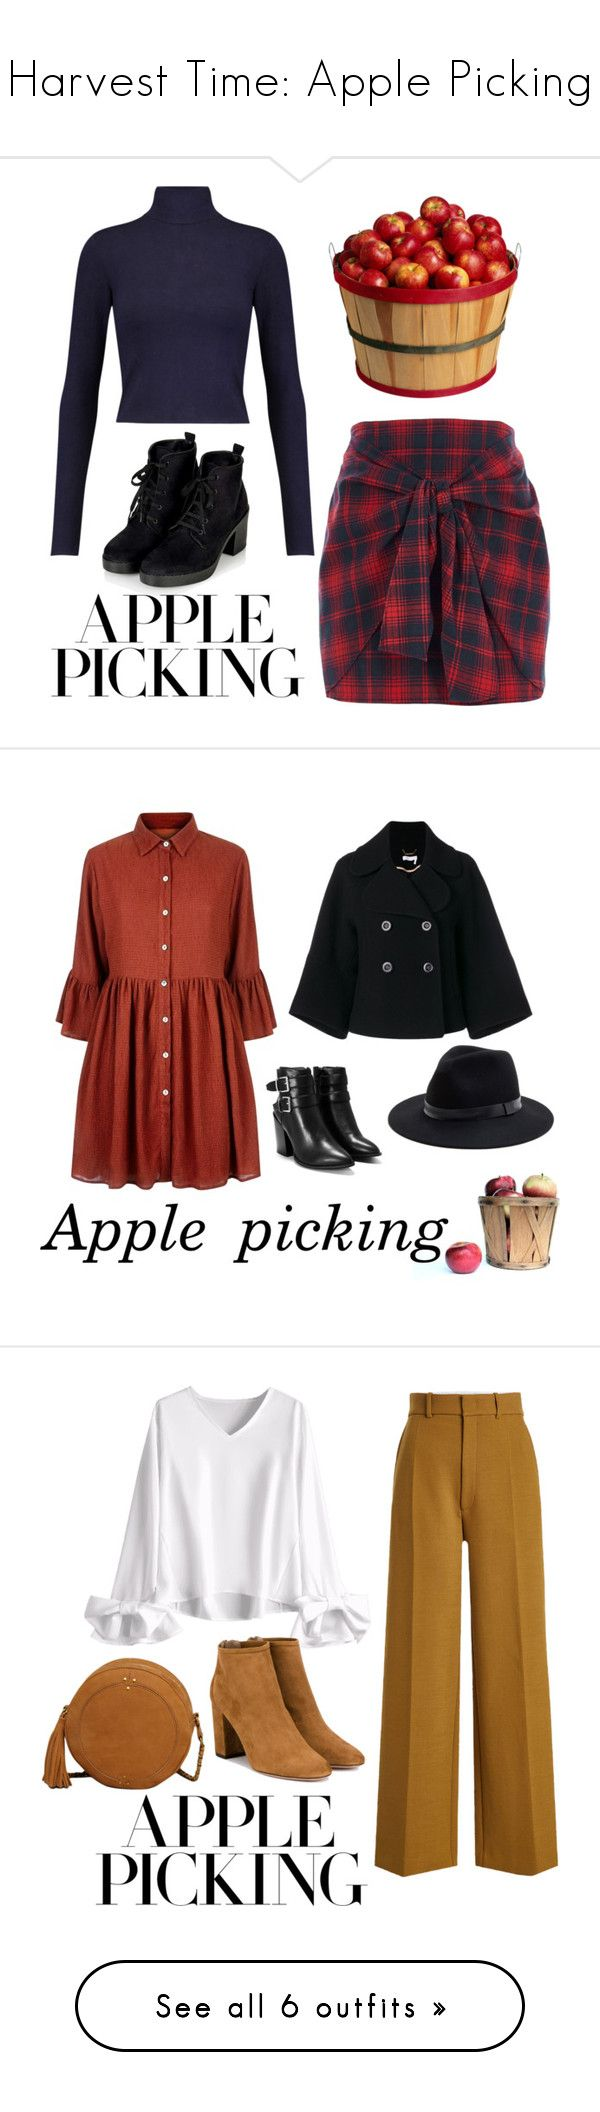 """Harvest Time: Apple Picking"" by svs-selma-svs ❤ liked on Polyvore featuring Alice + Olivia, River Island, Mela Loves London, Chloé, Nasty Gal, Sole Society, Joseph, Aquazzura, Jérôme Dreyfuss and Tom Ford"